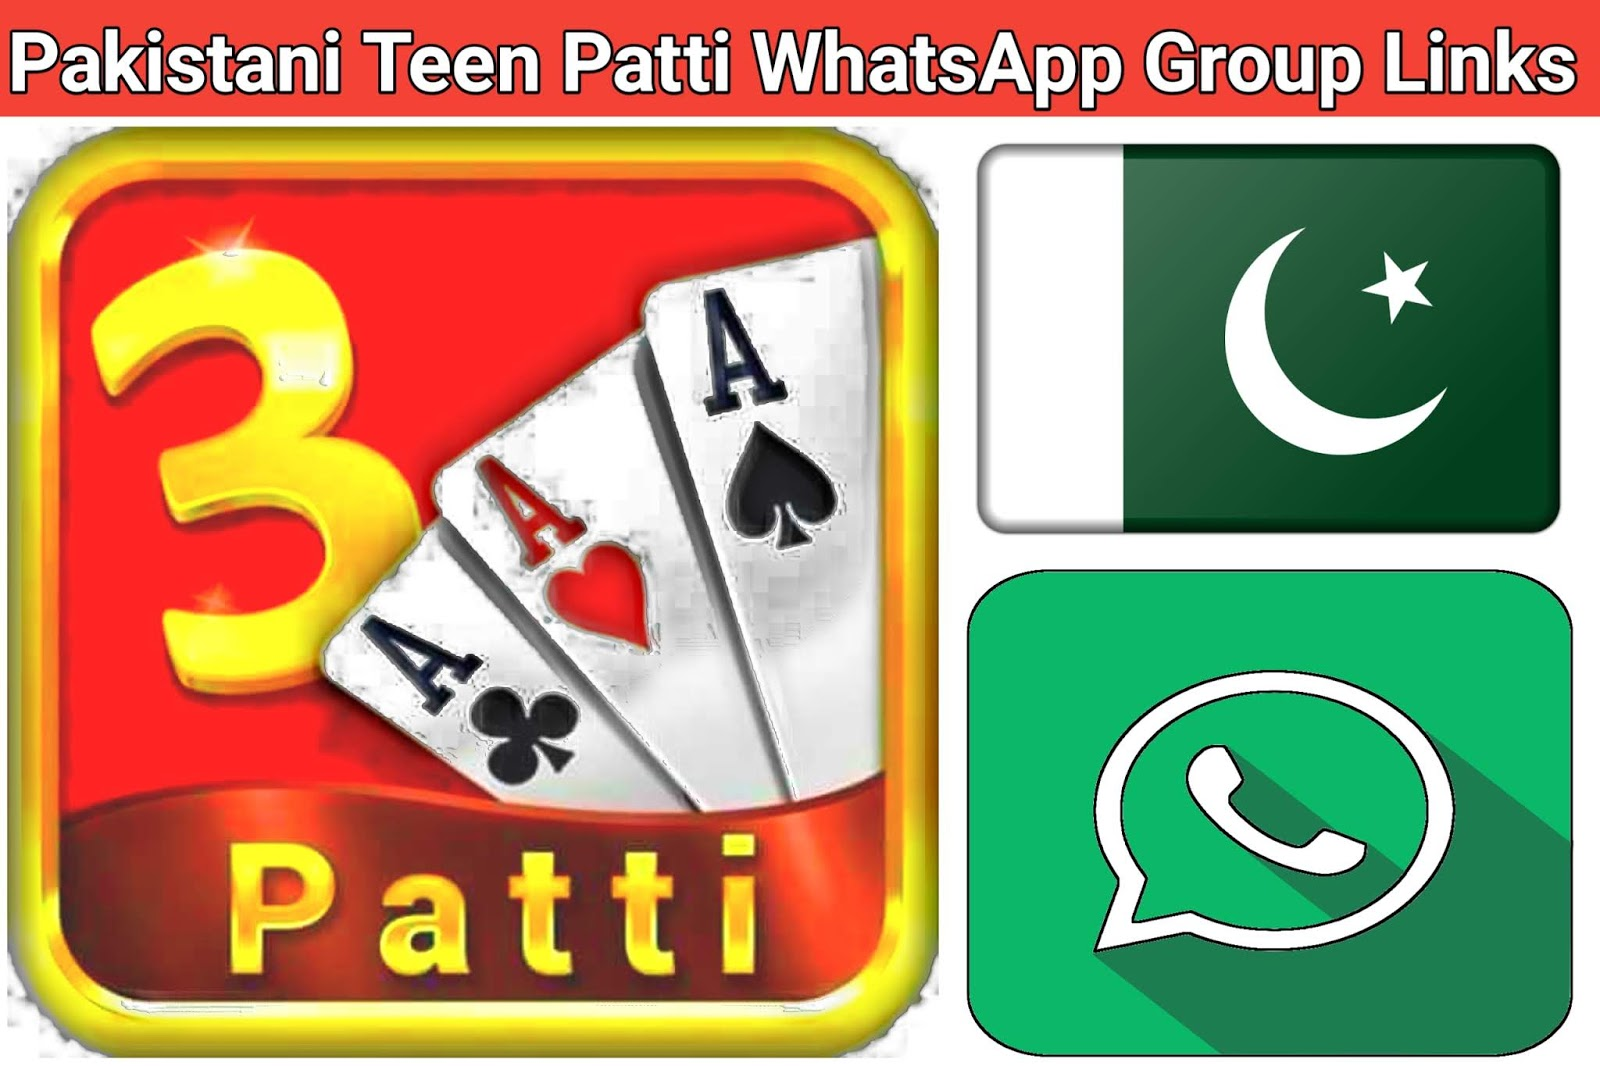 Pakistan Teen Patti WhatsApp Group Link - Teen Patti Game